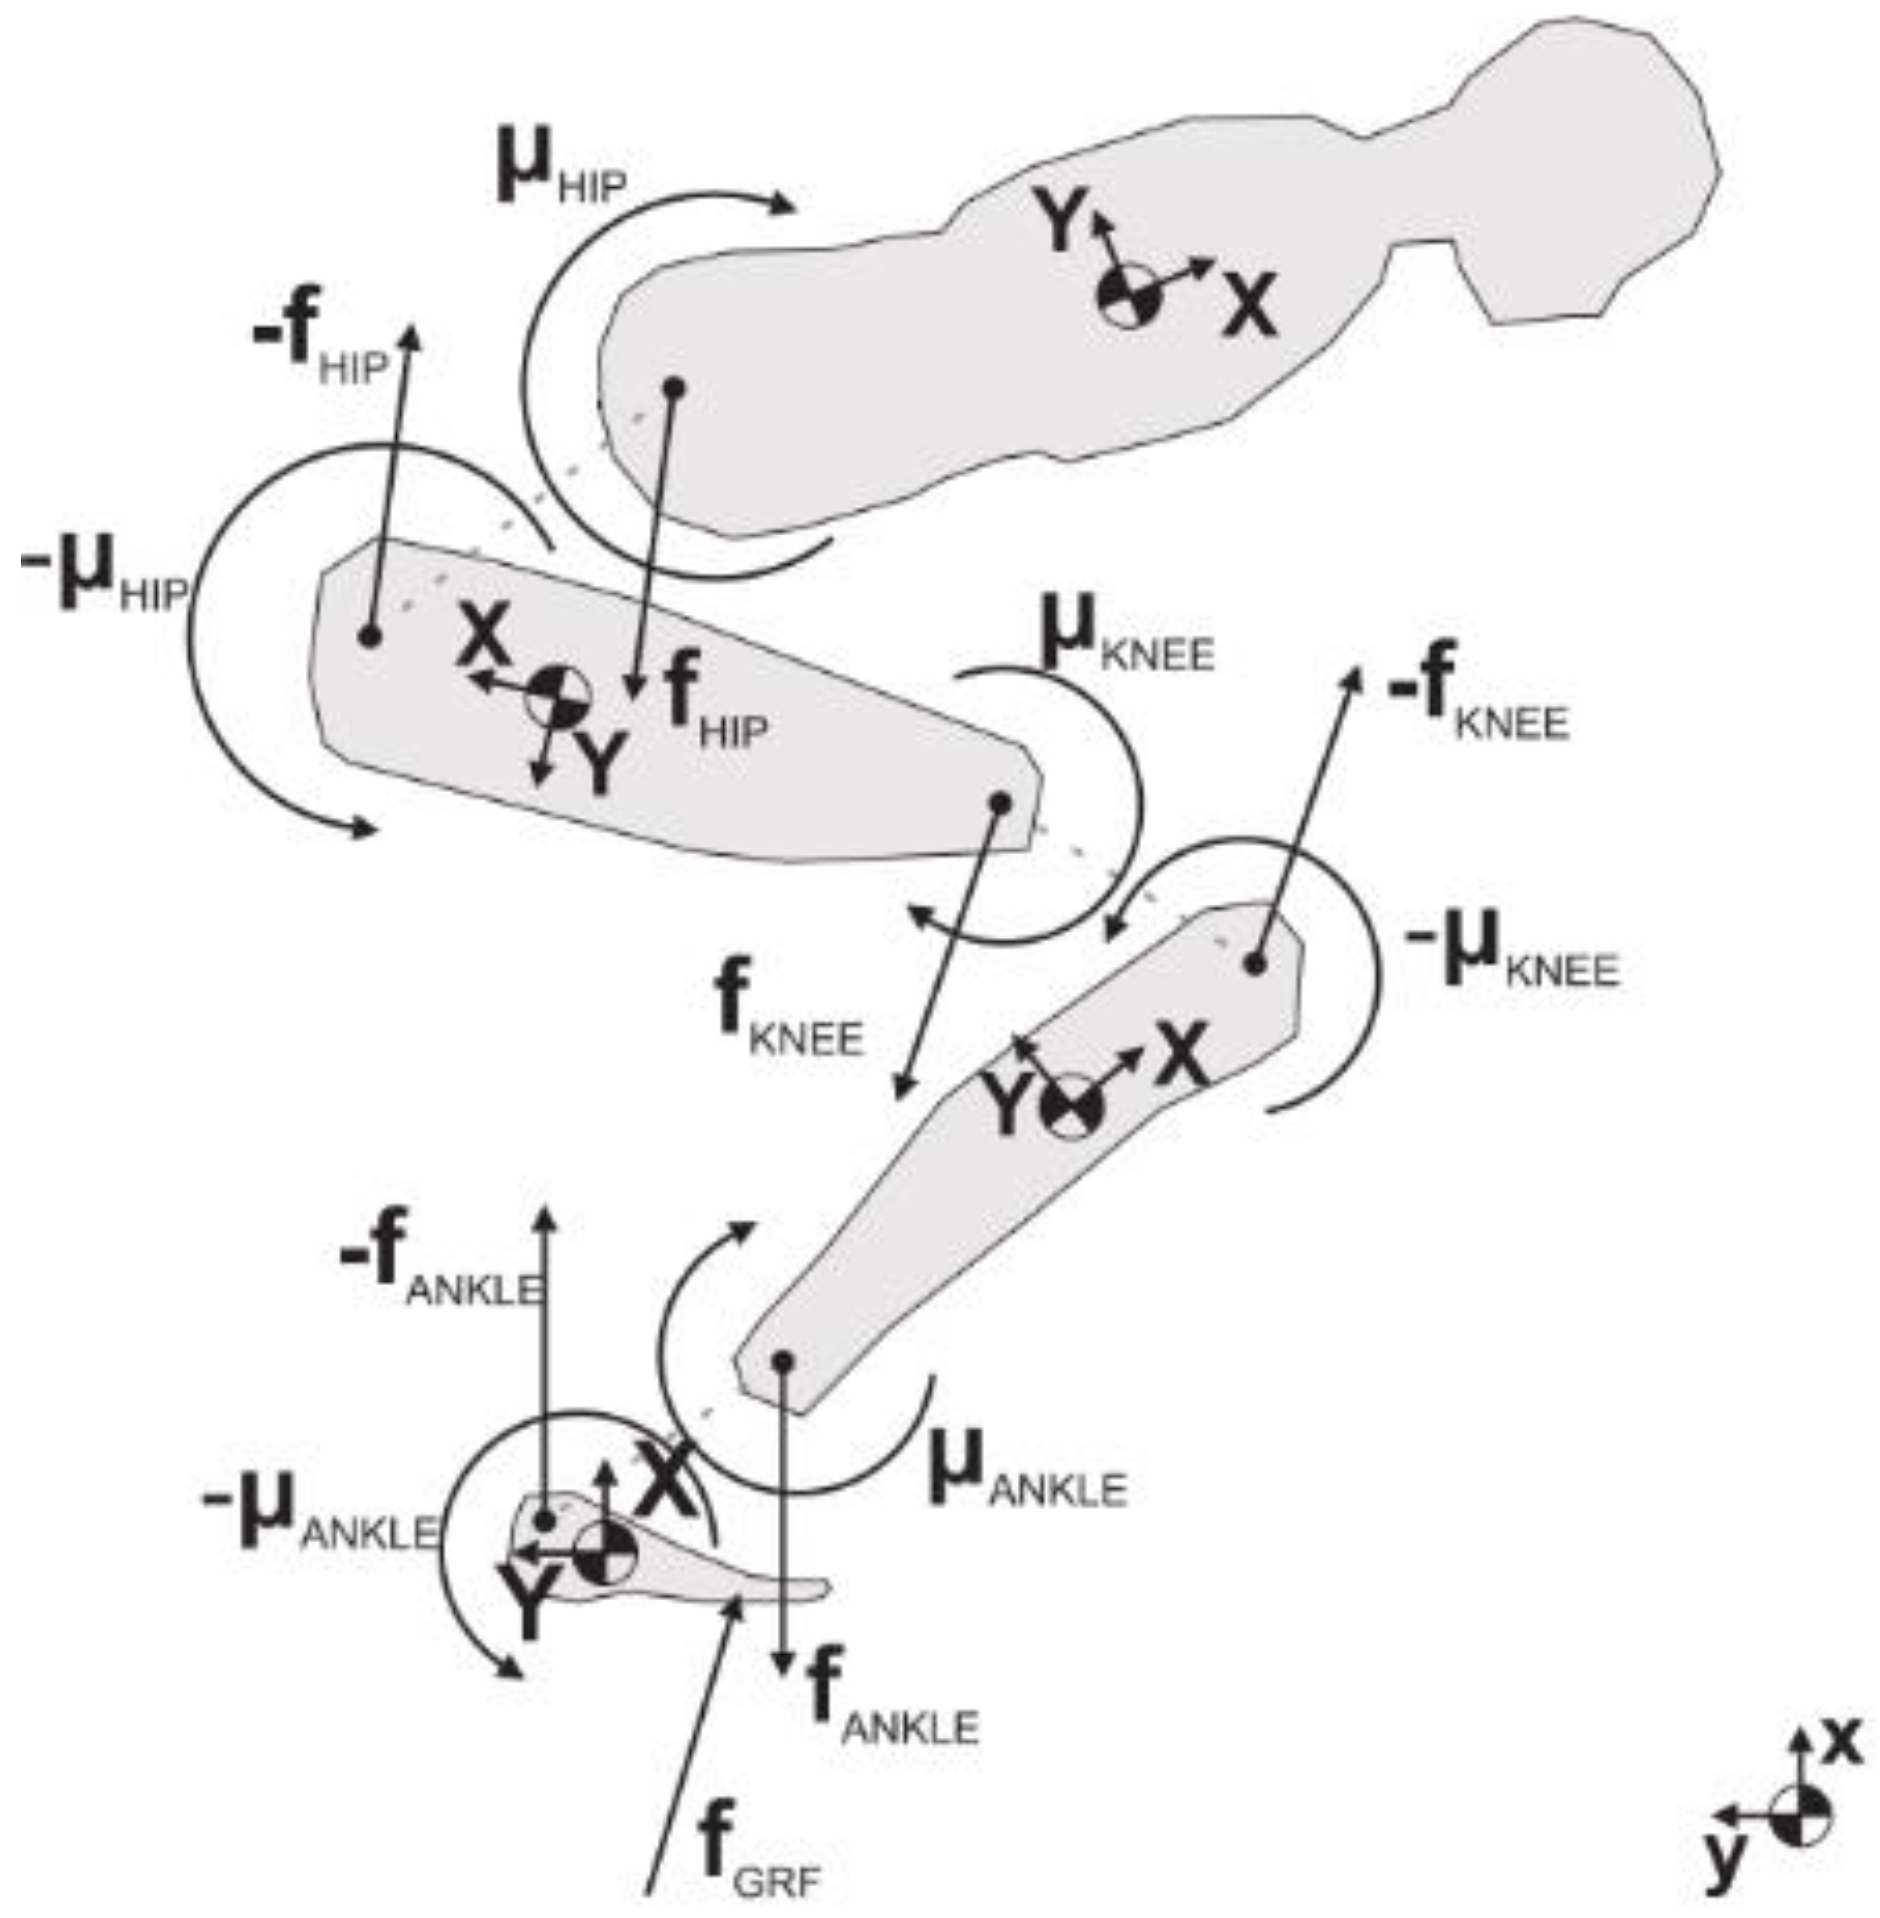 Free Body Diagram Showing The Applied Force Is Only Partially